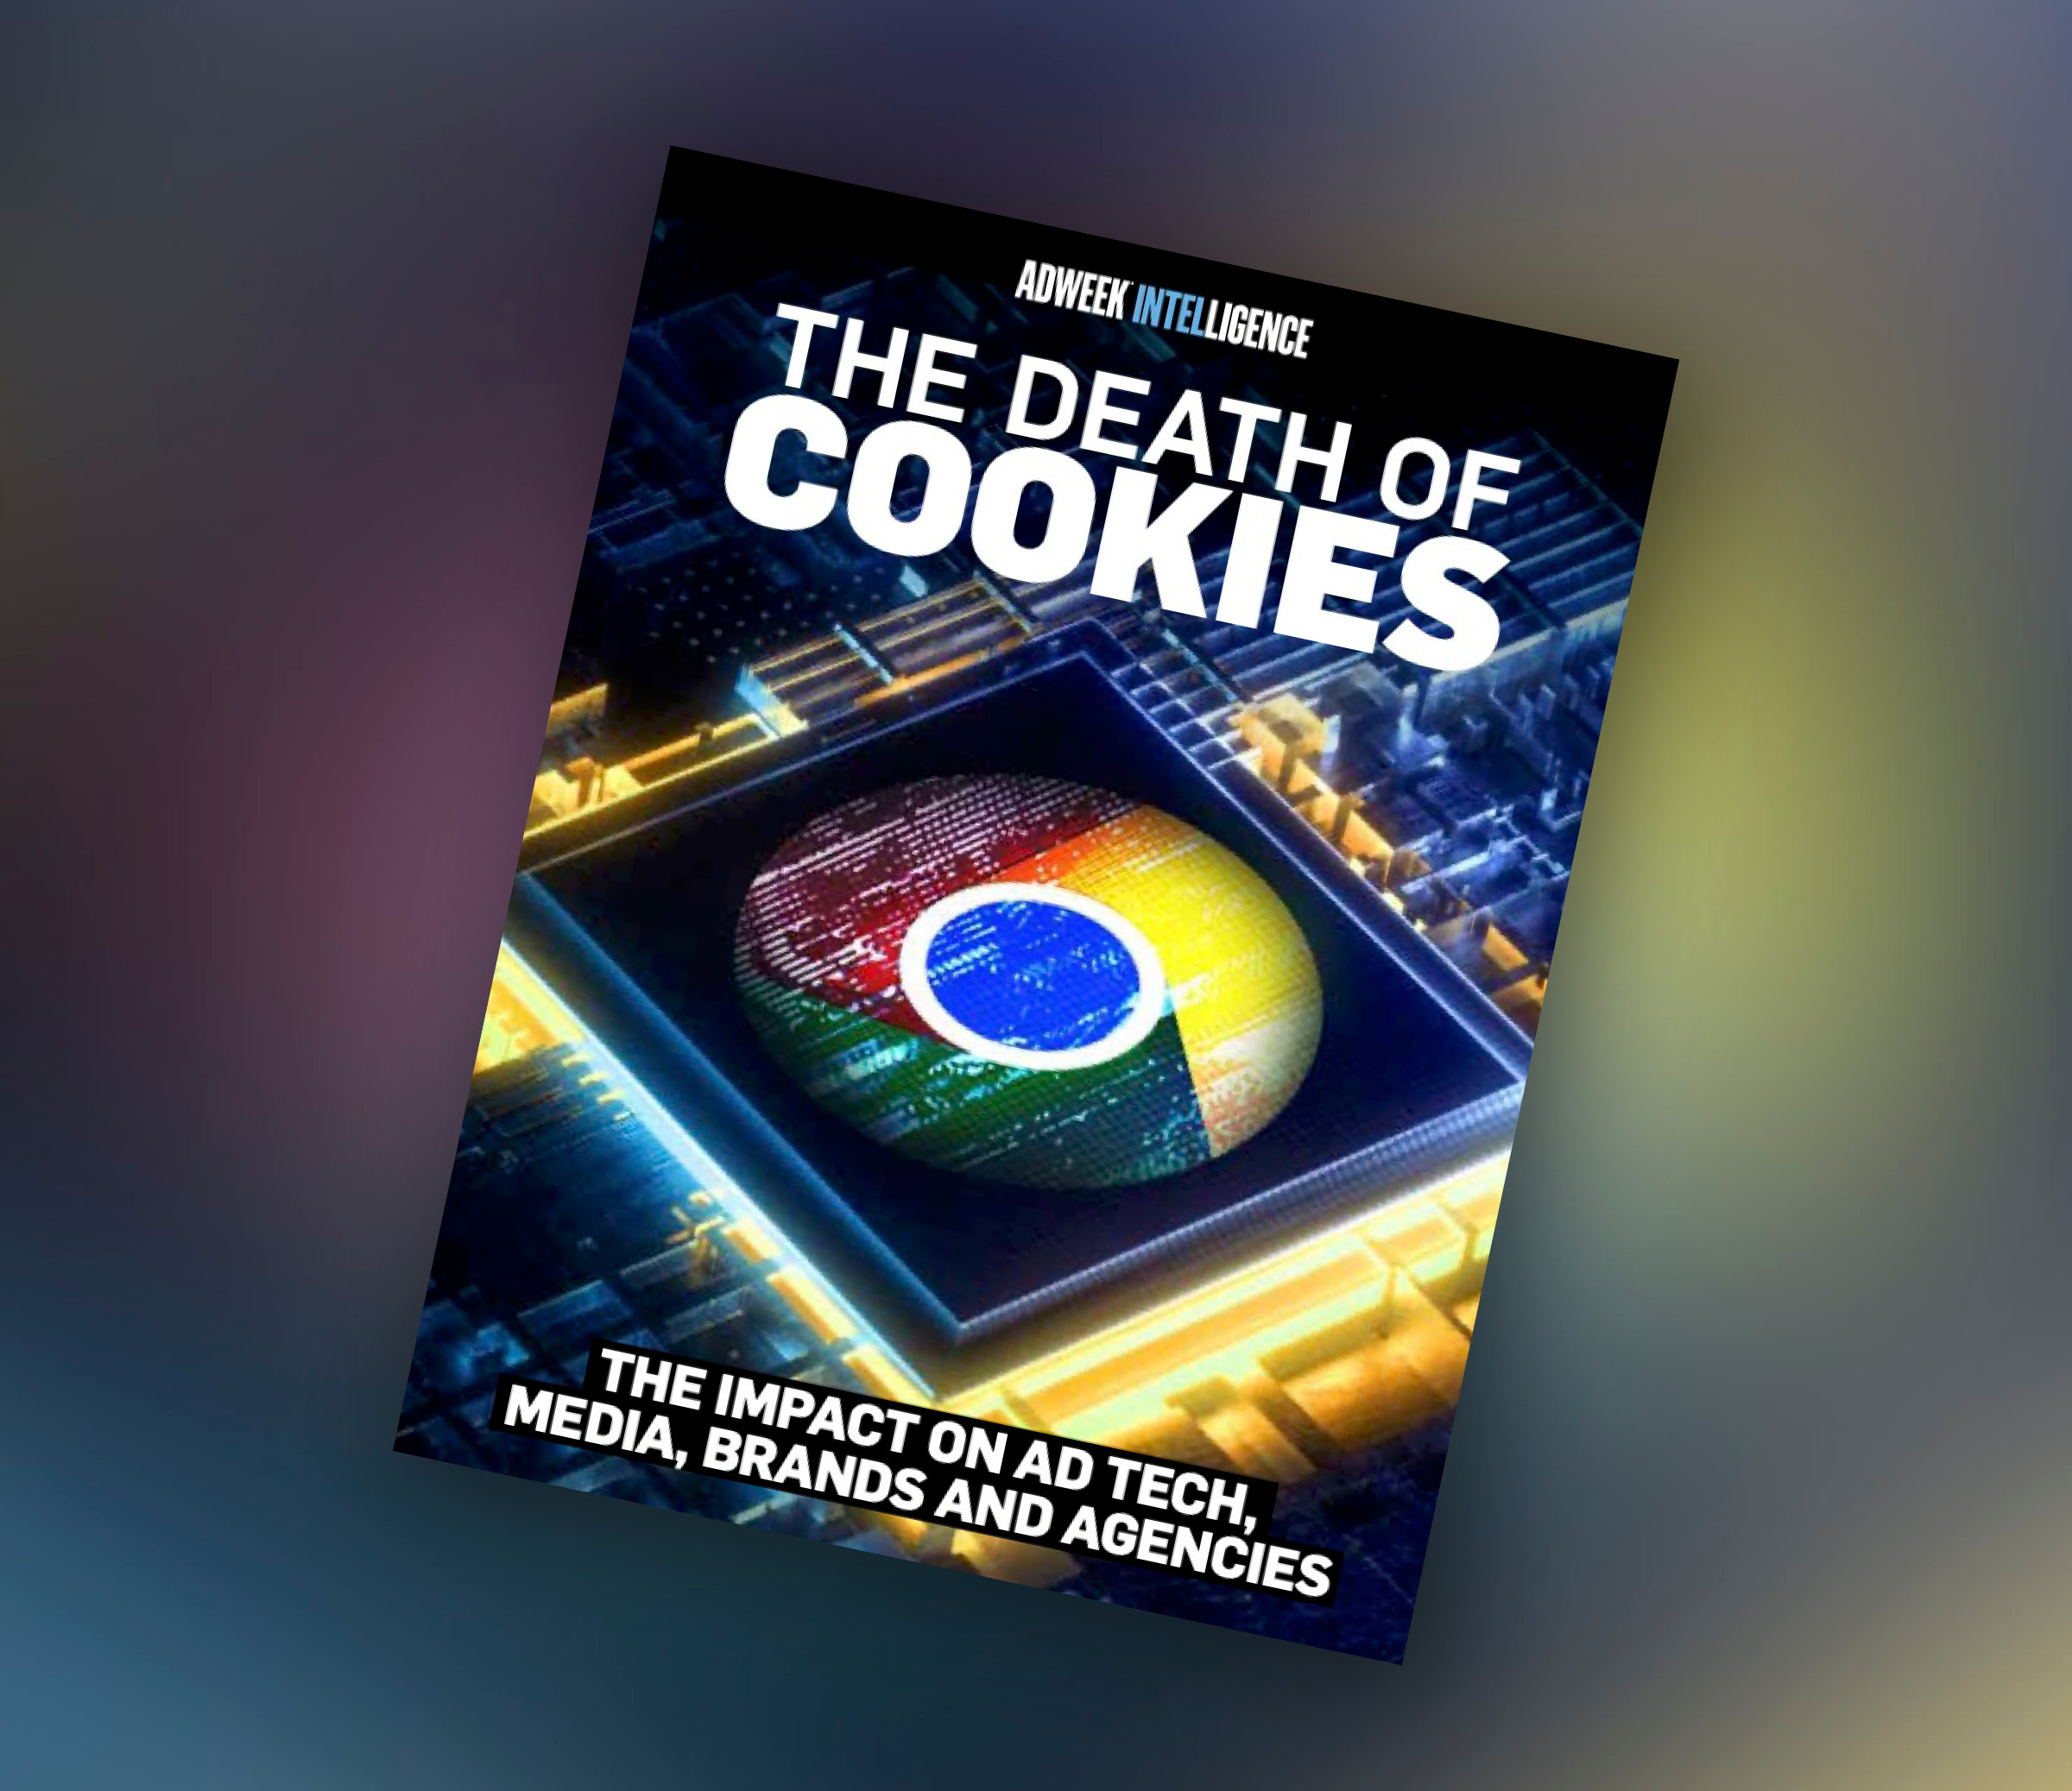 Adweek: The Death Of Cookies, The Impact on Ad Tech, Media, Brands And Agencies